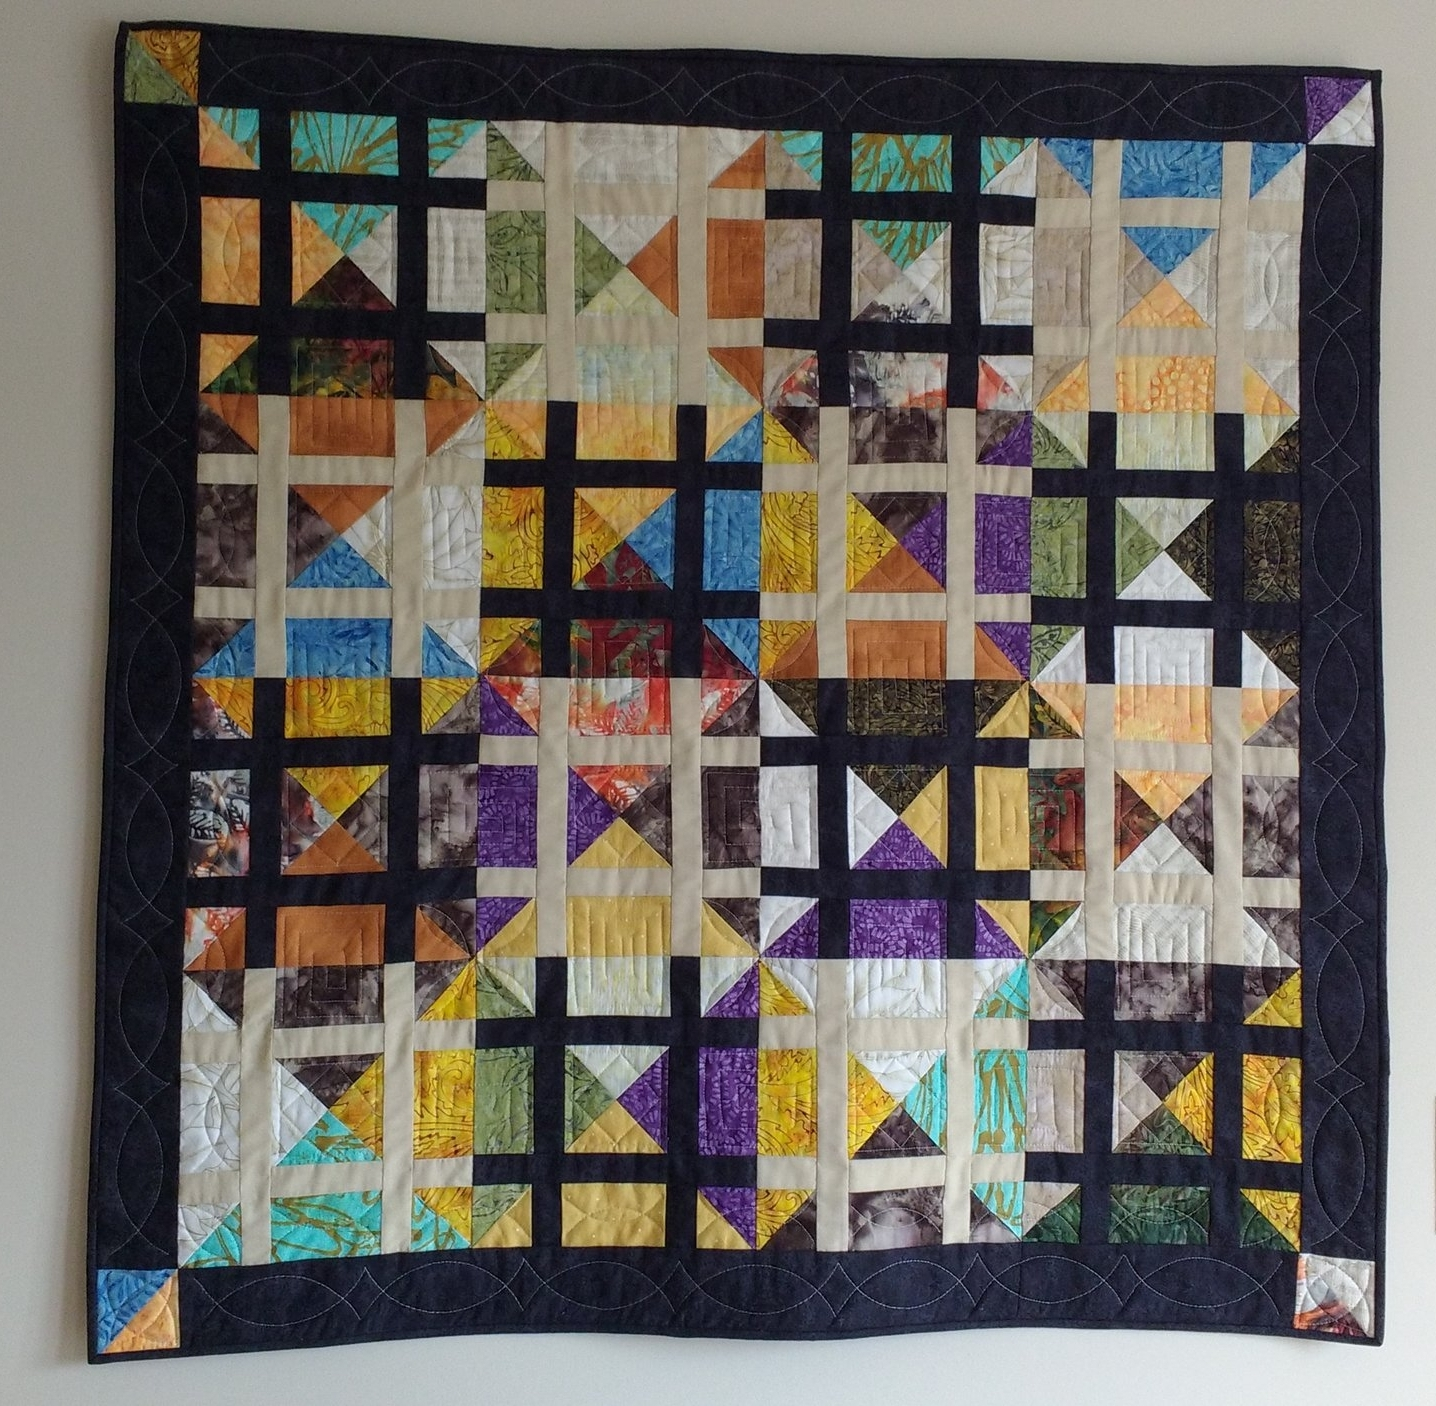 This wall quilt is called Matrix, a pattern by GE Designs. Quilted on a sit down machine, using rulers. I always do my own quilting, enjoying both my Sit Down and Long Arm Machines, as well as hand quilting. This piece adds lots of color to brighten our home!